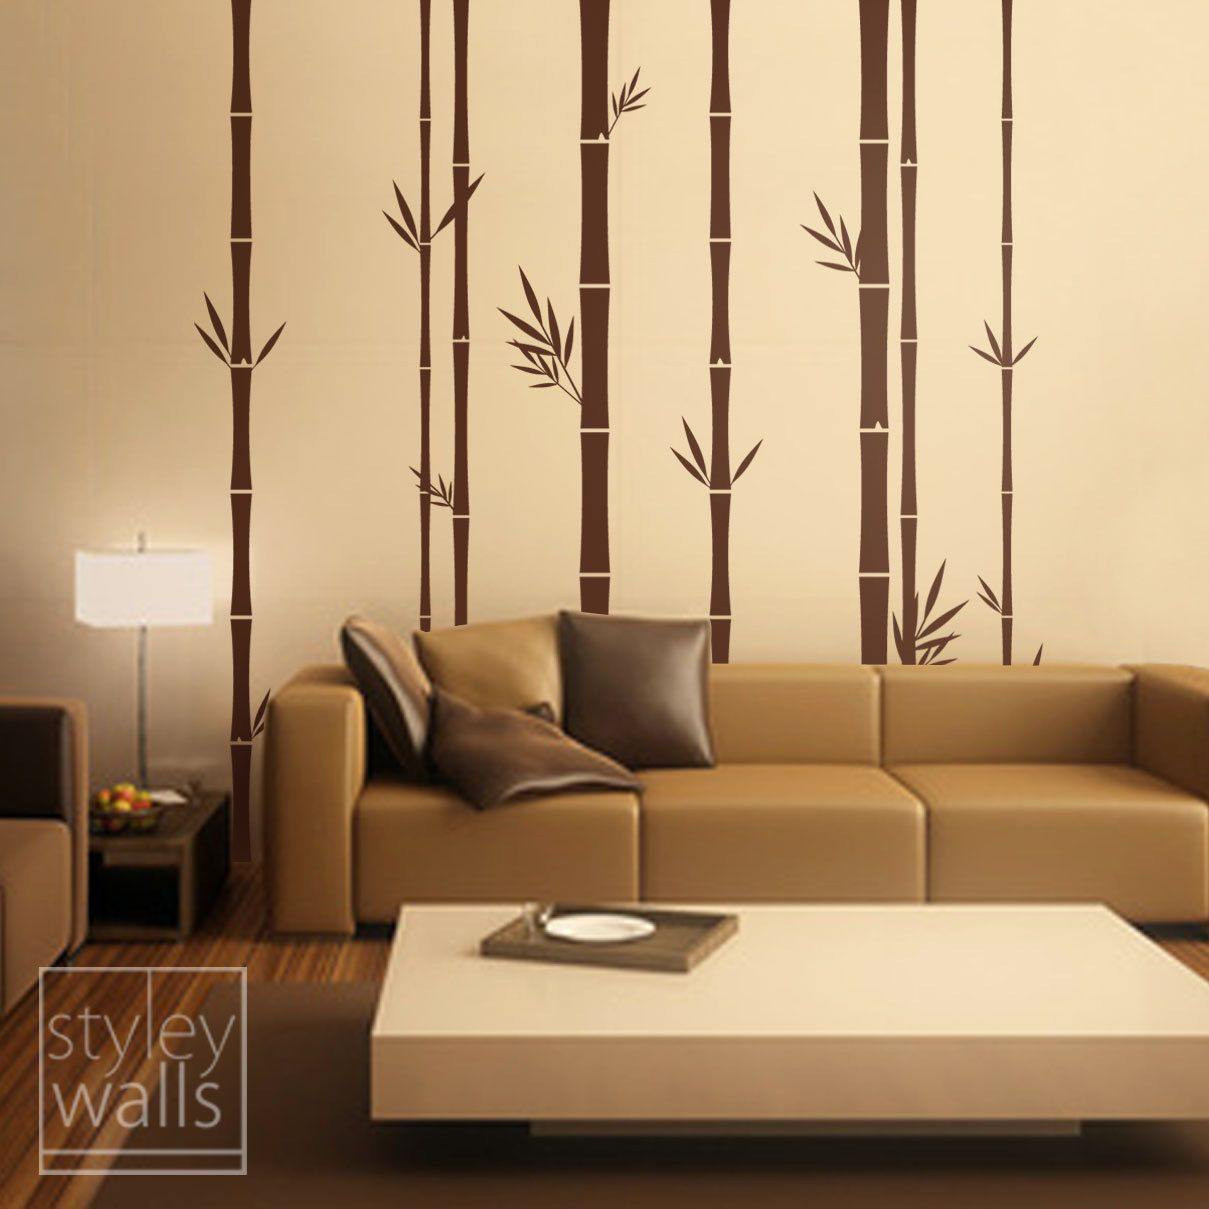 bamboo wall decal 100inch tall set of 8 bamboo stalks on wall stickers for home id=46689